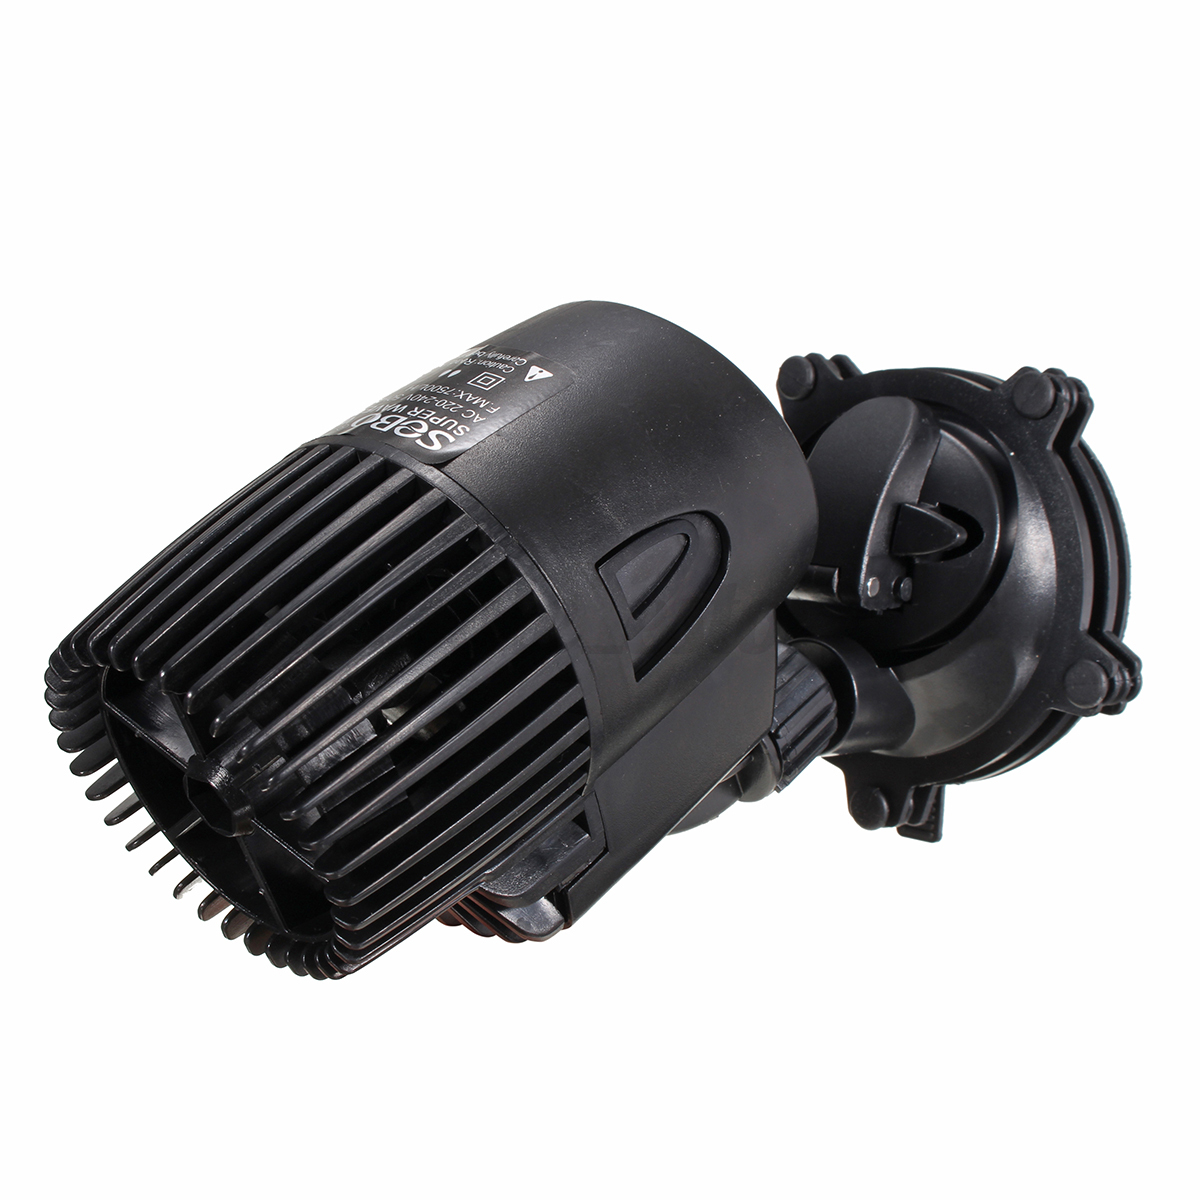 aquarium wave maker fish tank powerhead water pump reef